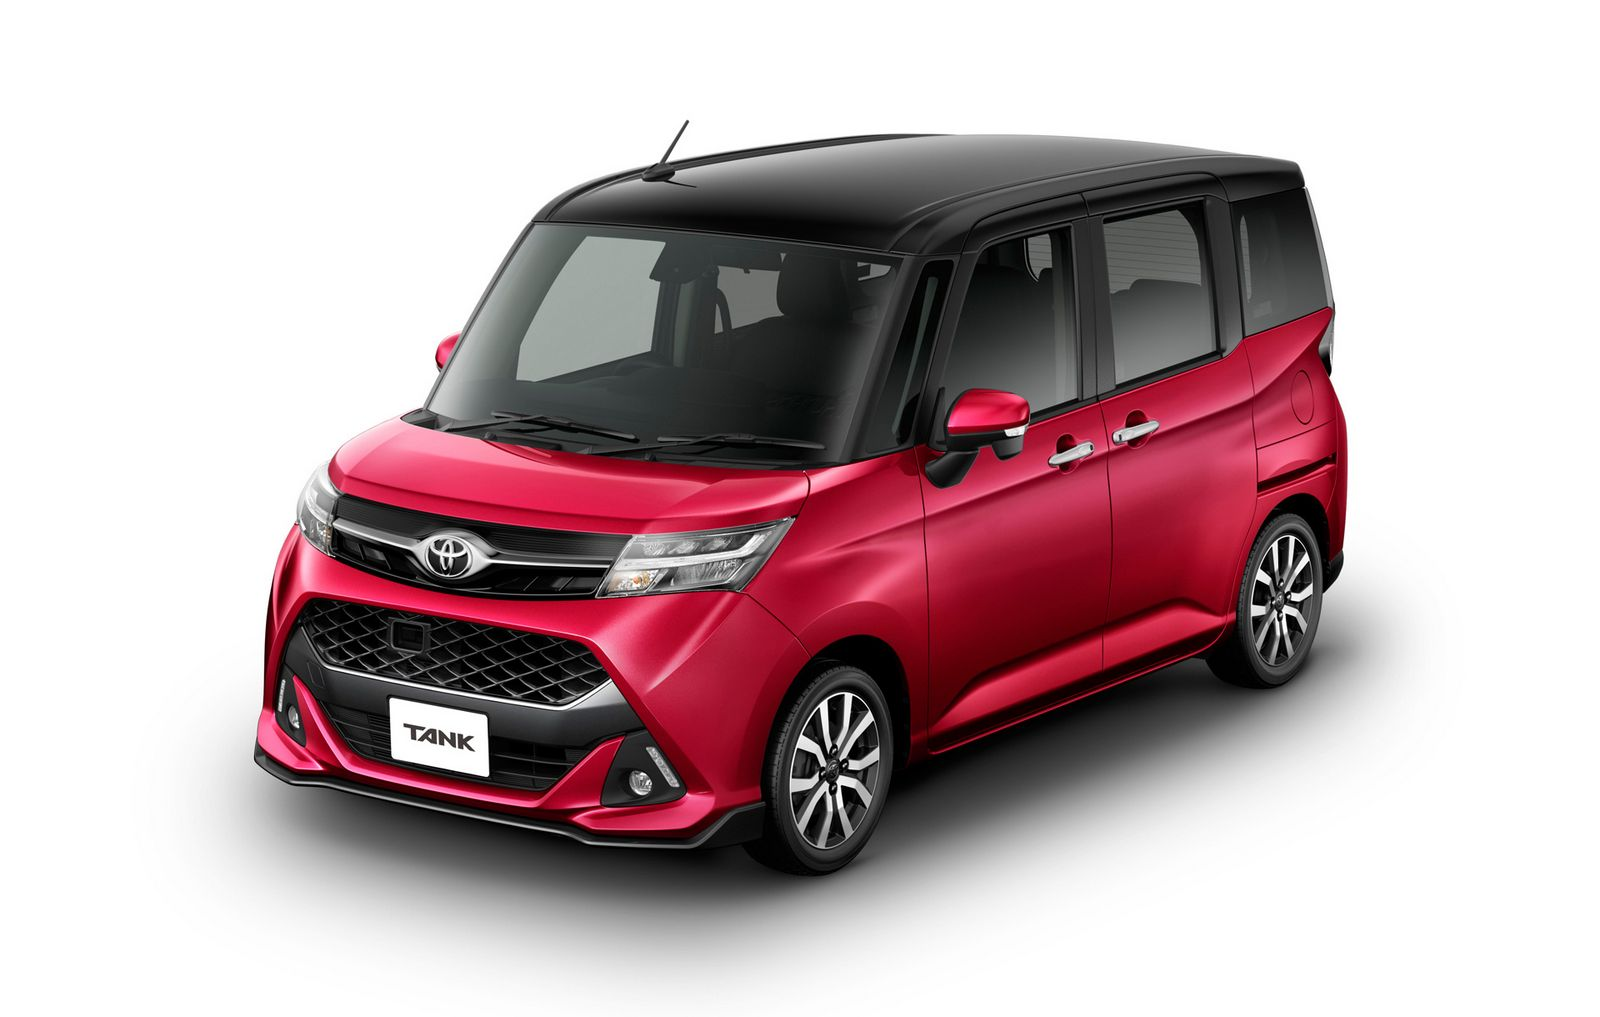 toyota roomy and tank minivans launch in japan carscoops. Black Bedroom Furniture Sets. Home Design Ideas